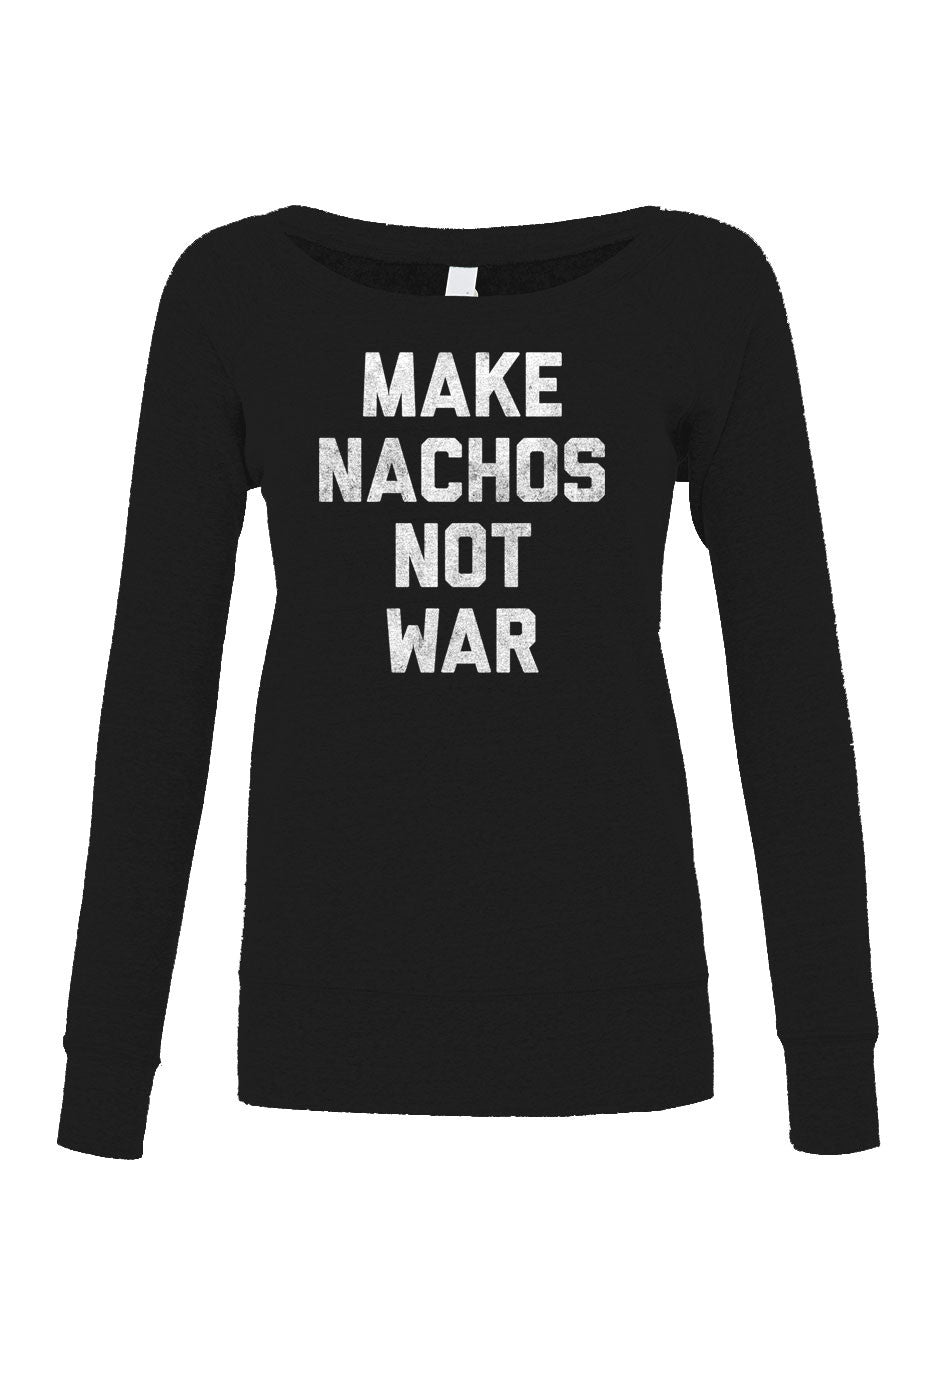 Women's Make Nachos Not War Scoop Neck Fleece